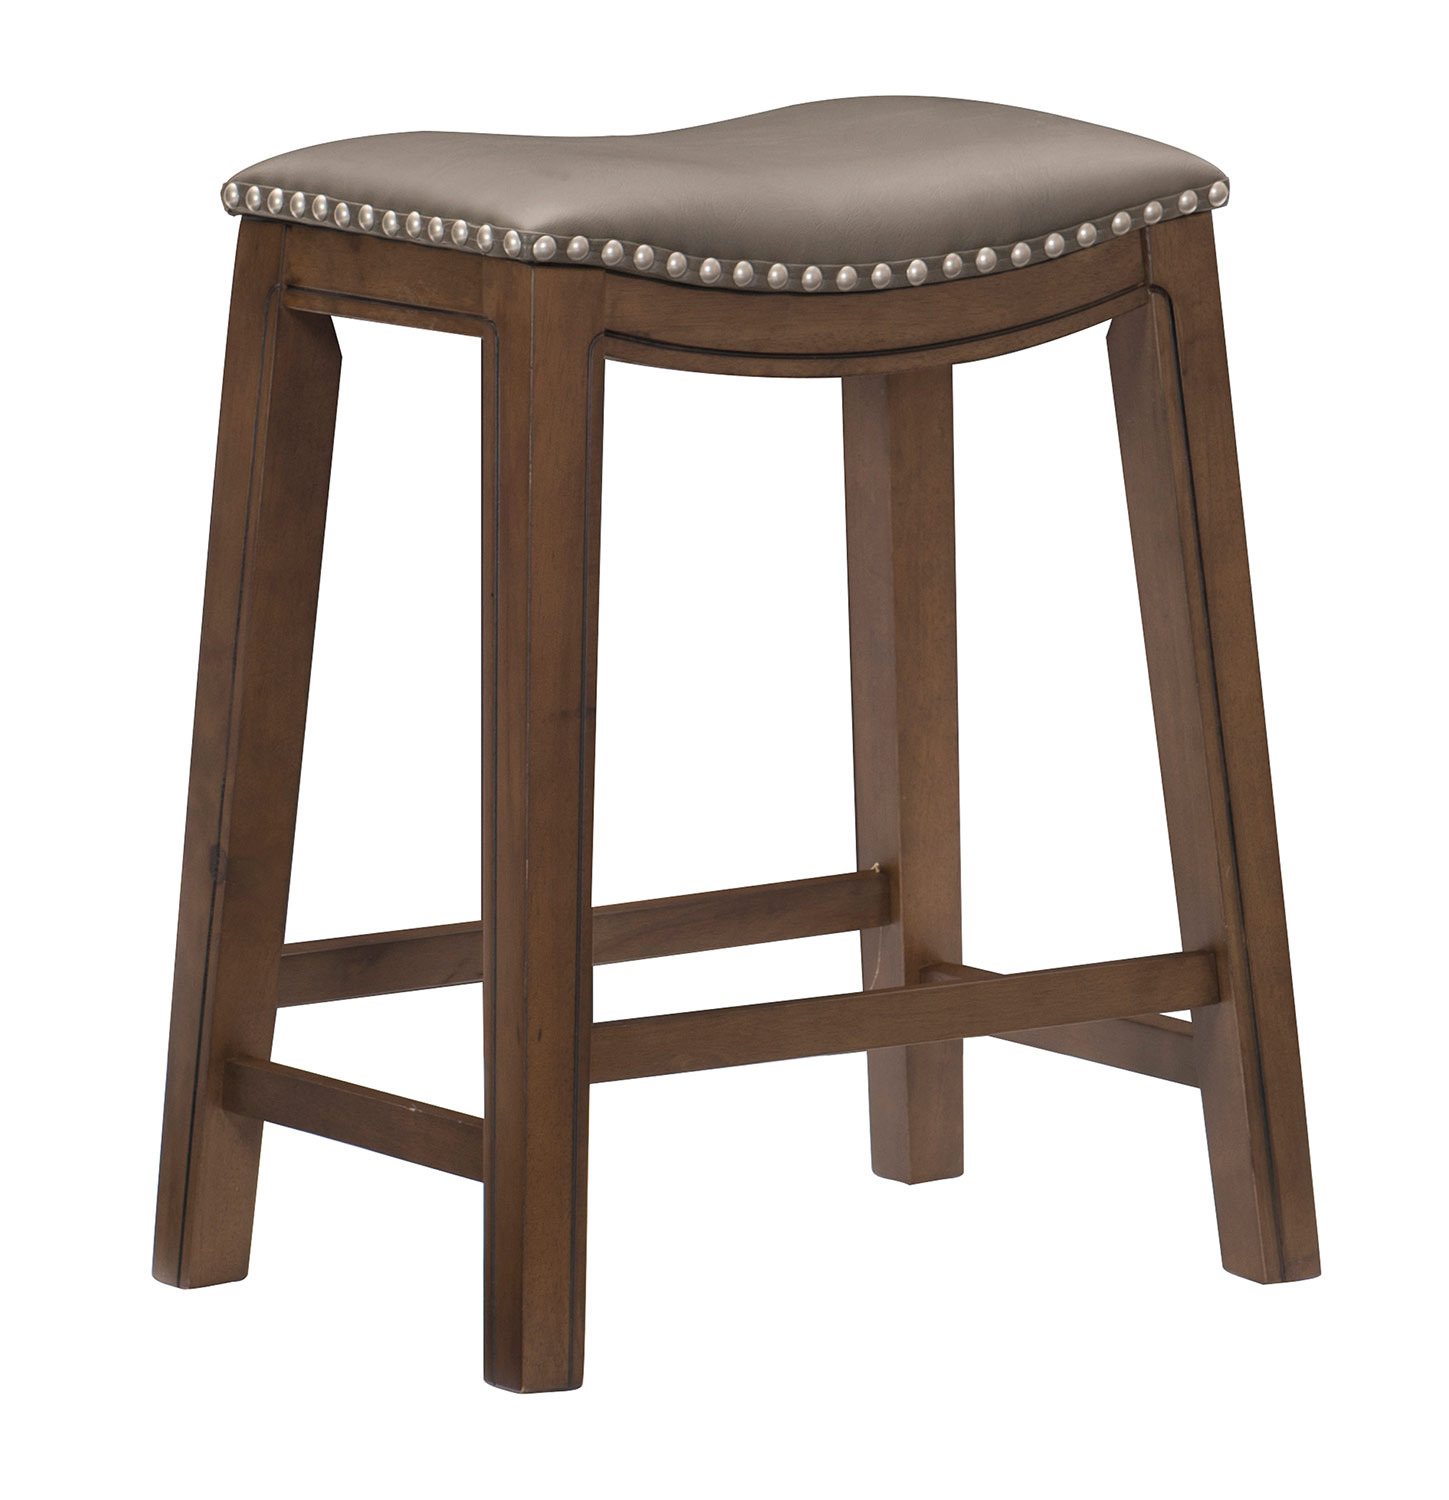 Homelegance 24 SH Stool - Gray